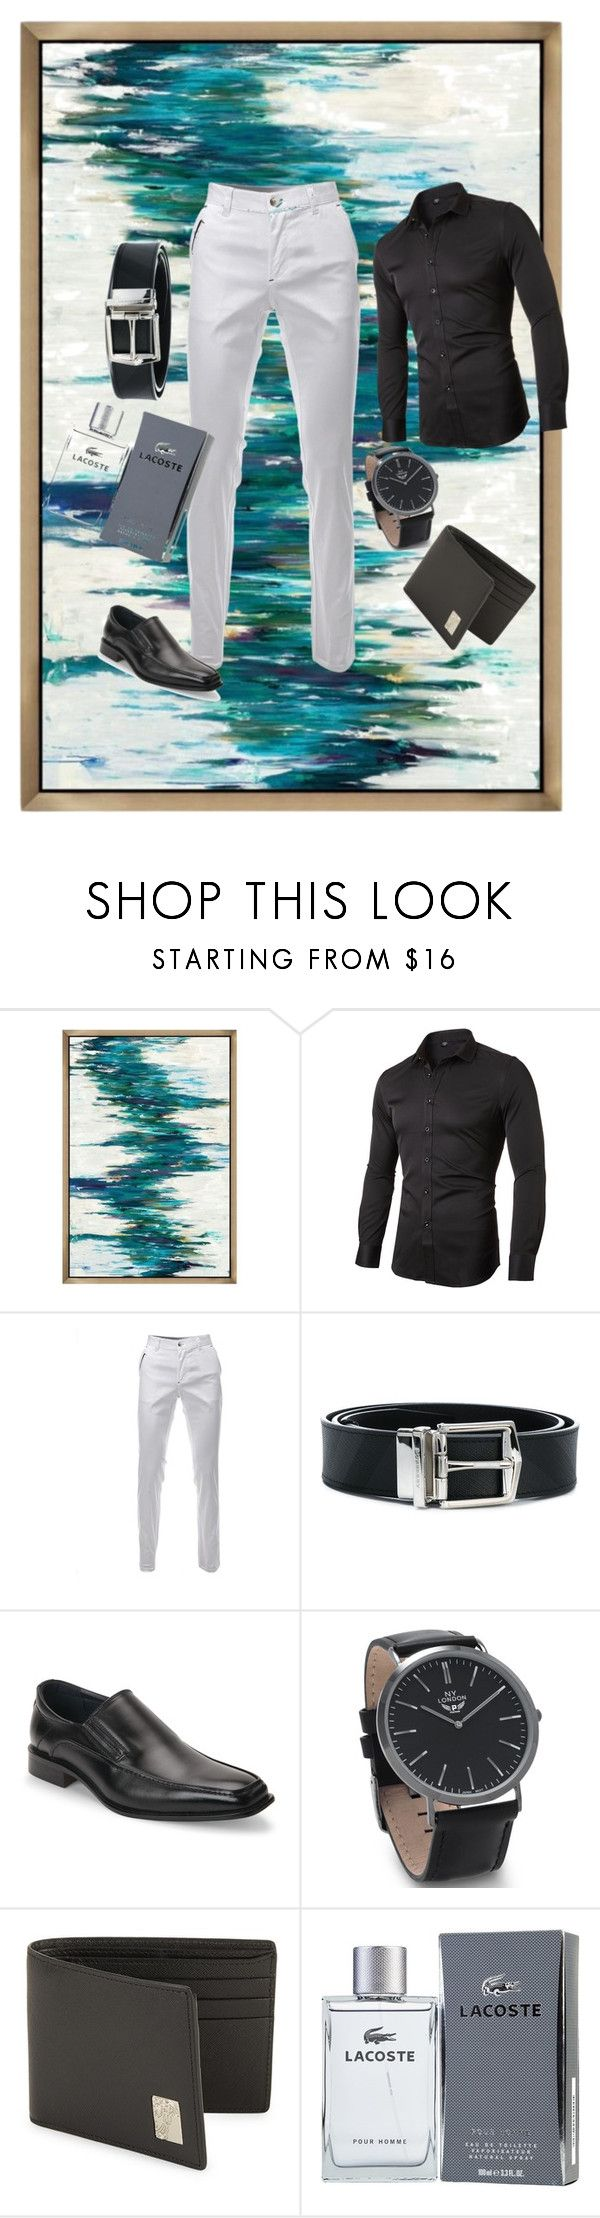 """Untitled #12"" by elziradzinic ❤ liked on Polyvore featuring Burberry, Joseph Abboud, BillyTheTree, Versace, Lacoste, men's fashion and menswear"